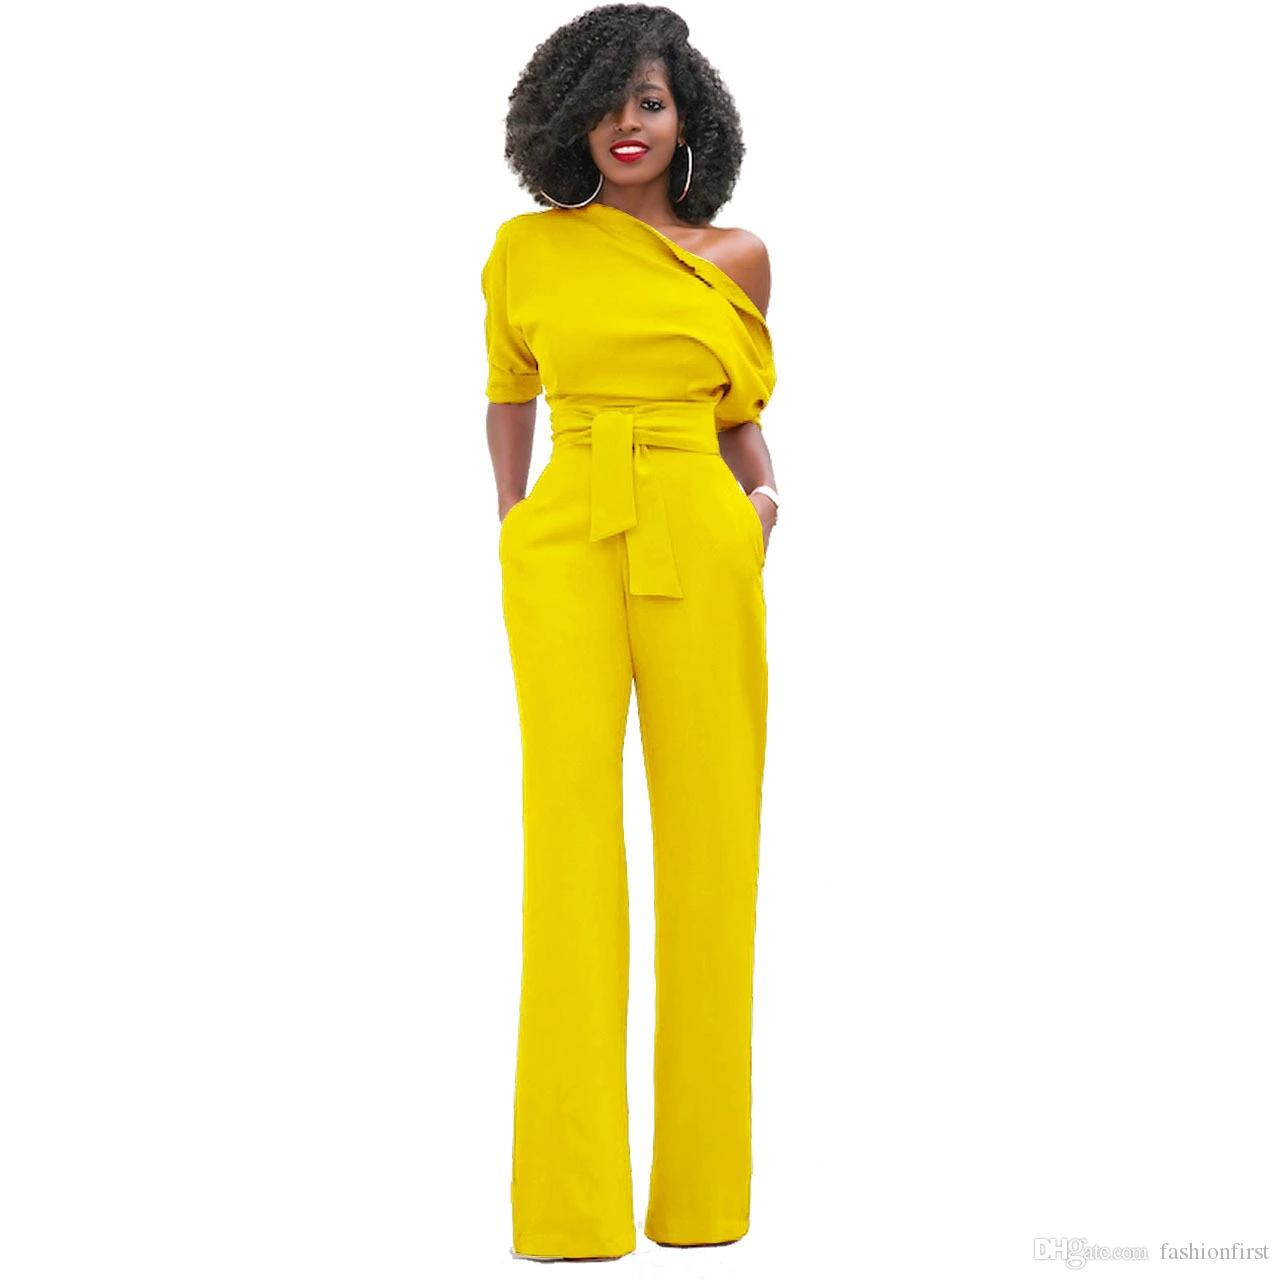 a310f7f12 2019 New Fashion One Shoulder Elegant Jumpsuits Women Plus Size Rompers  Womens Jumpsuits Short Sleeve Female Overalls From Fashionfirst